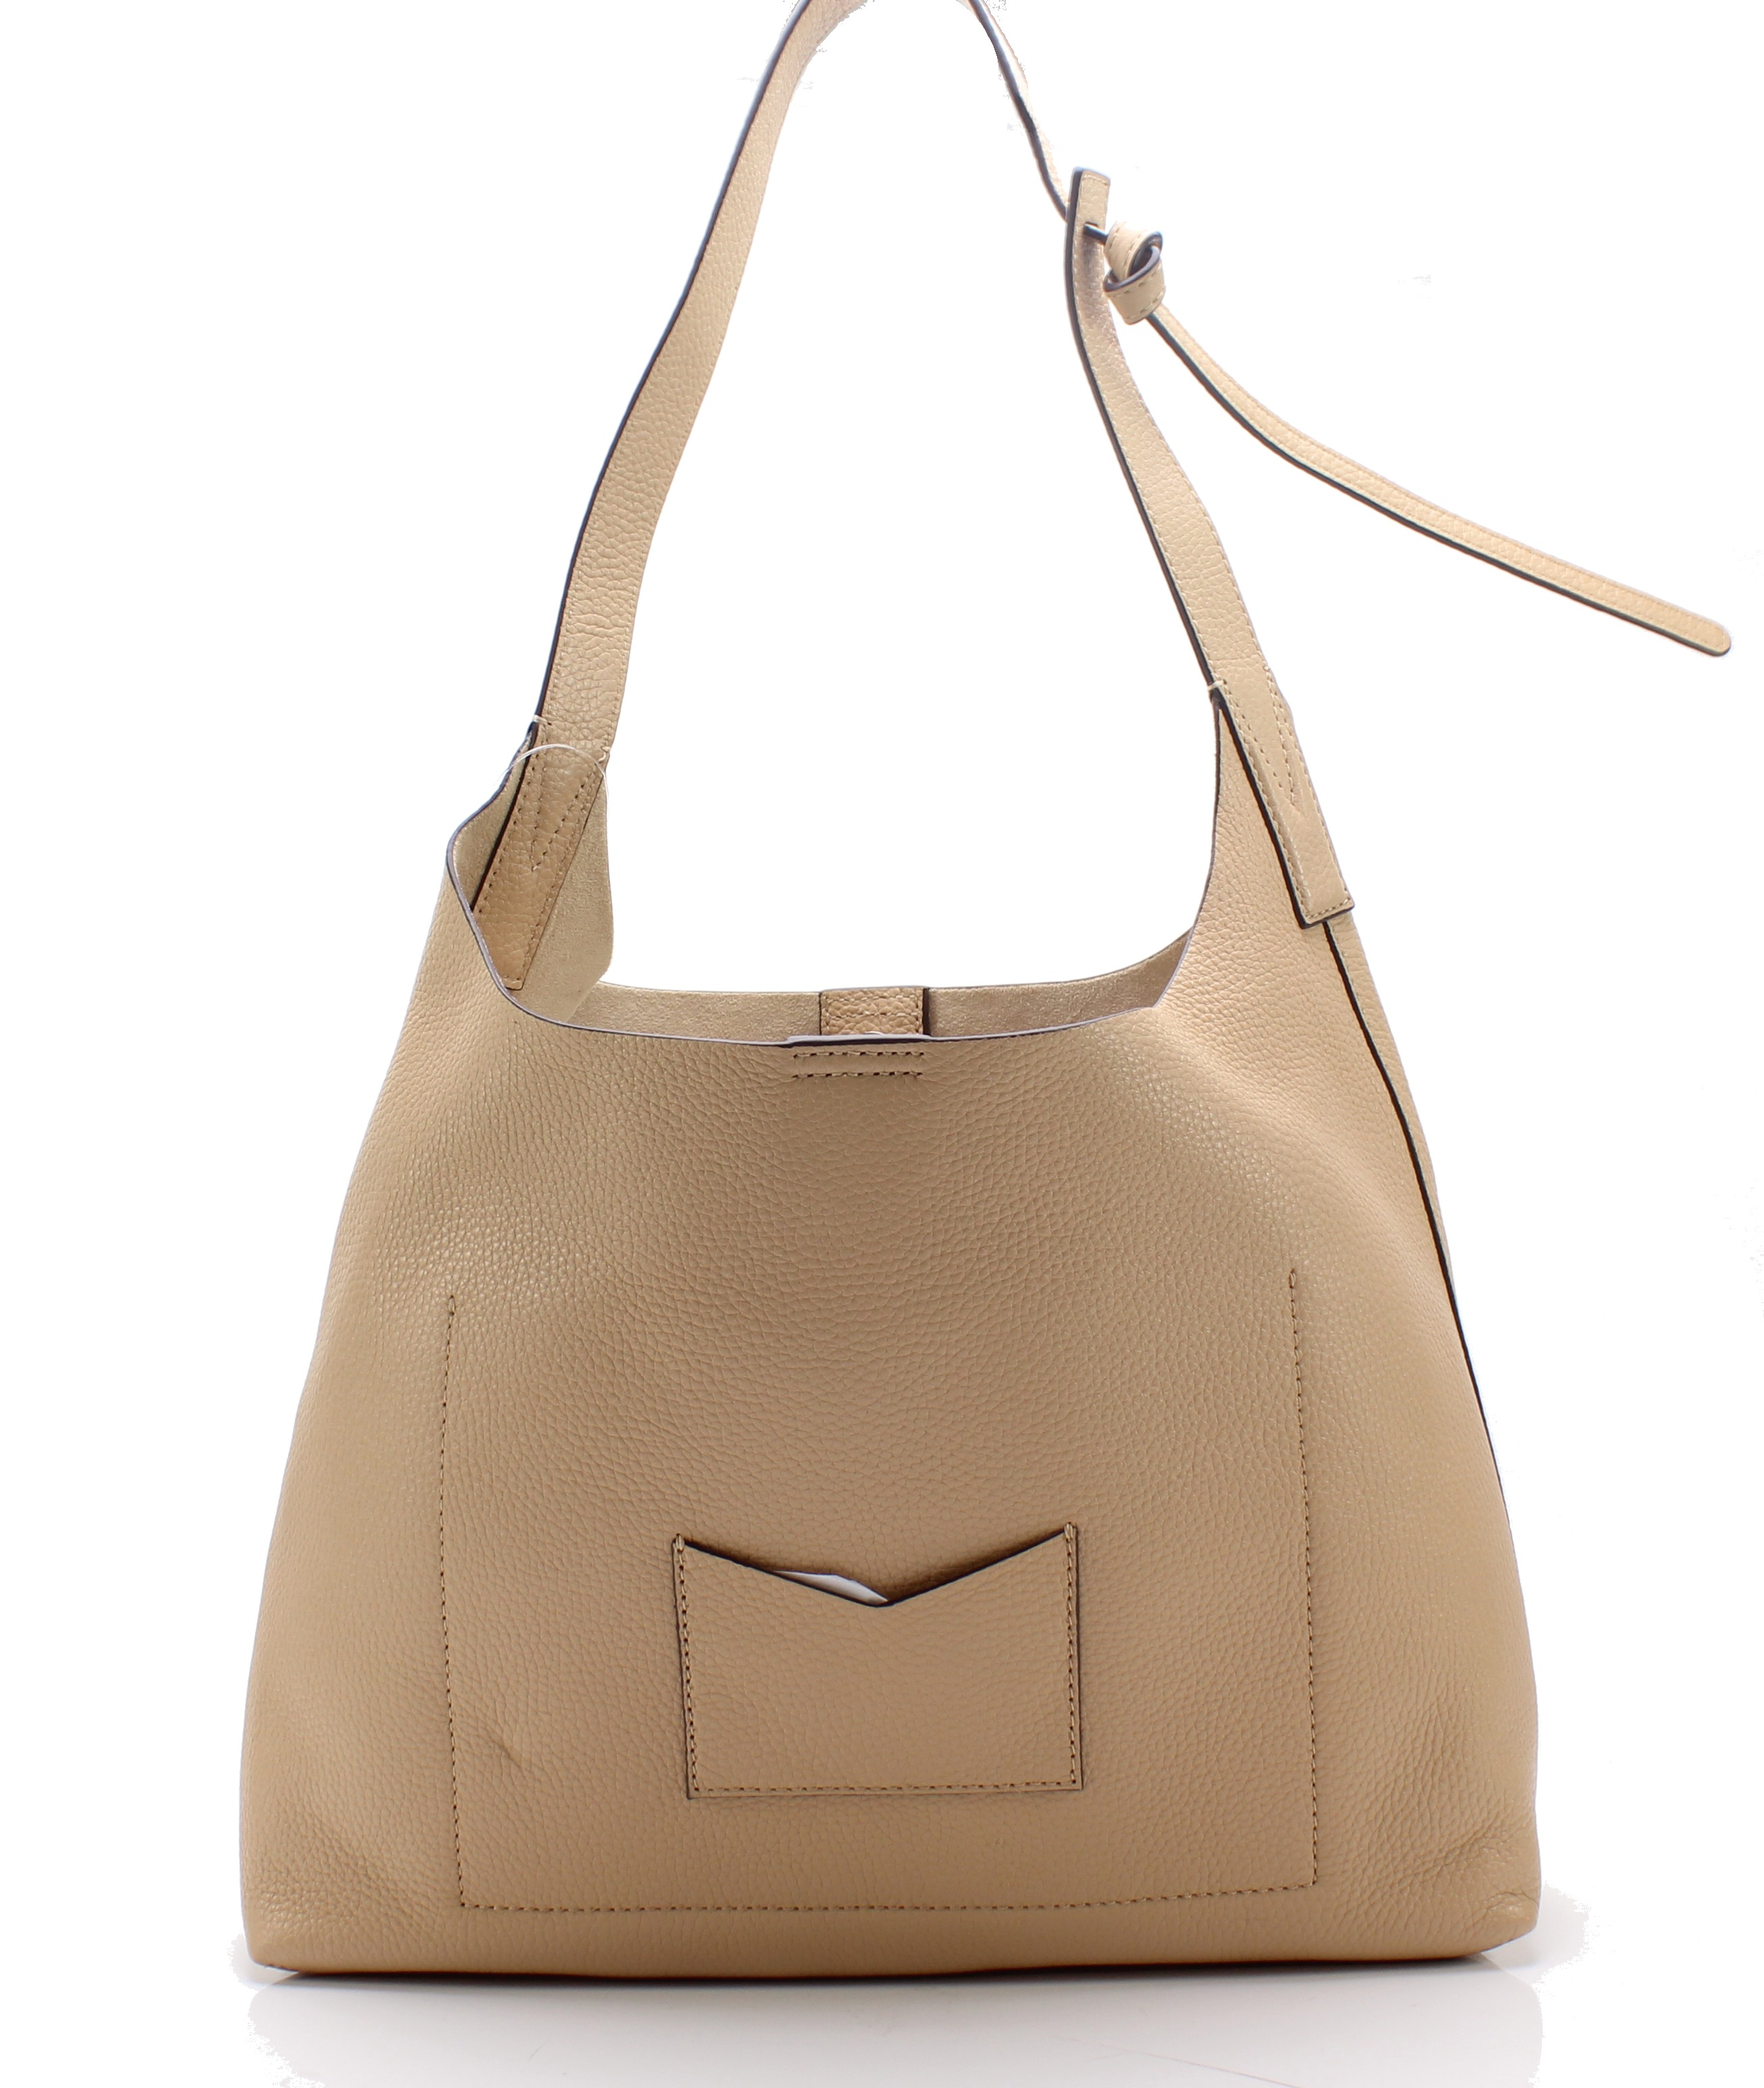 0f0f584f675f Michael Kors NEW Butternut Gold Junie Medium Leather Hobo Shoulder ...